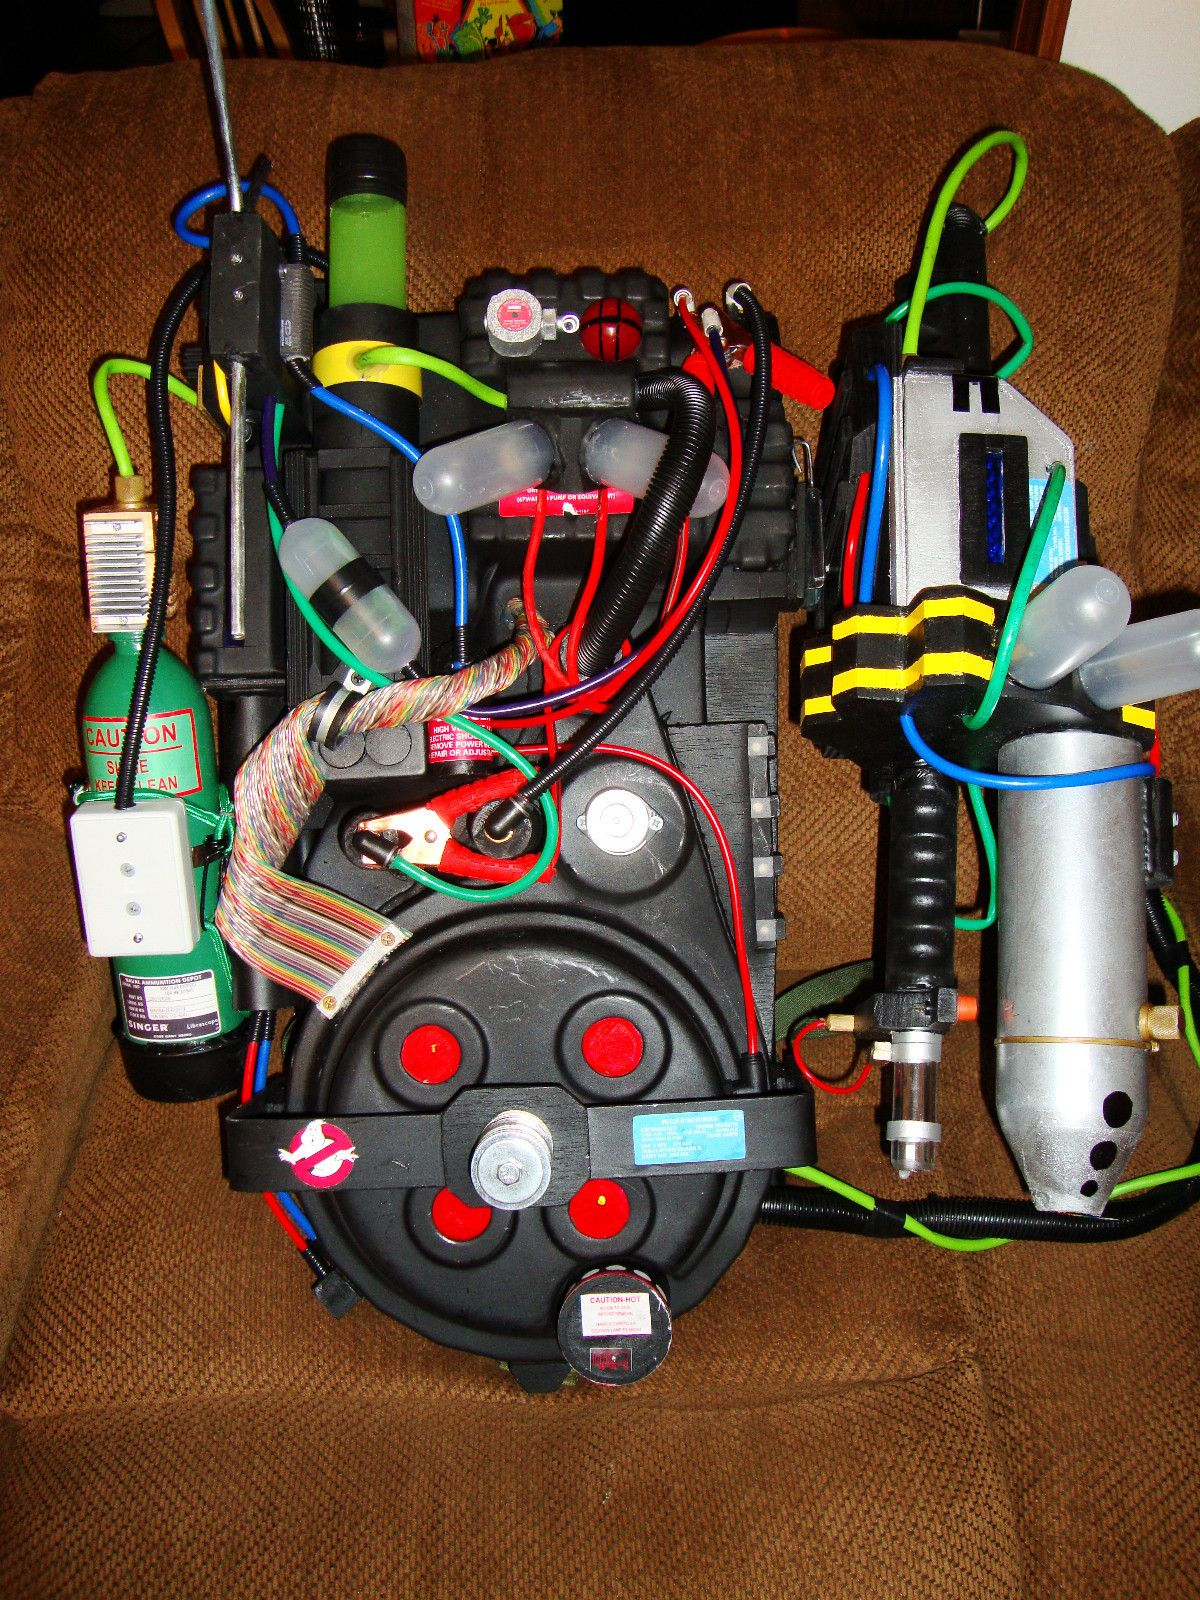 Ghostbusters proton pack prop replica video game style w